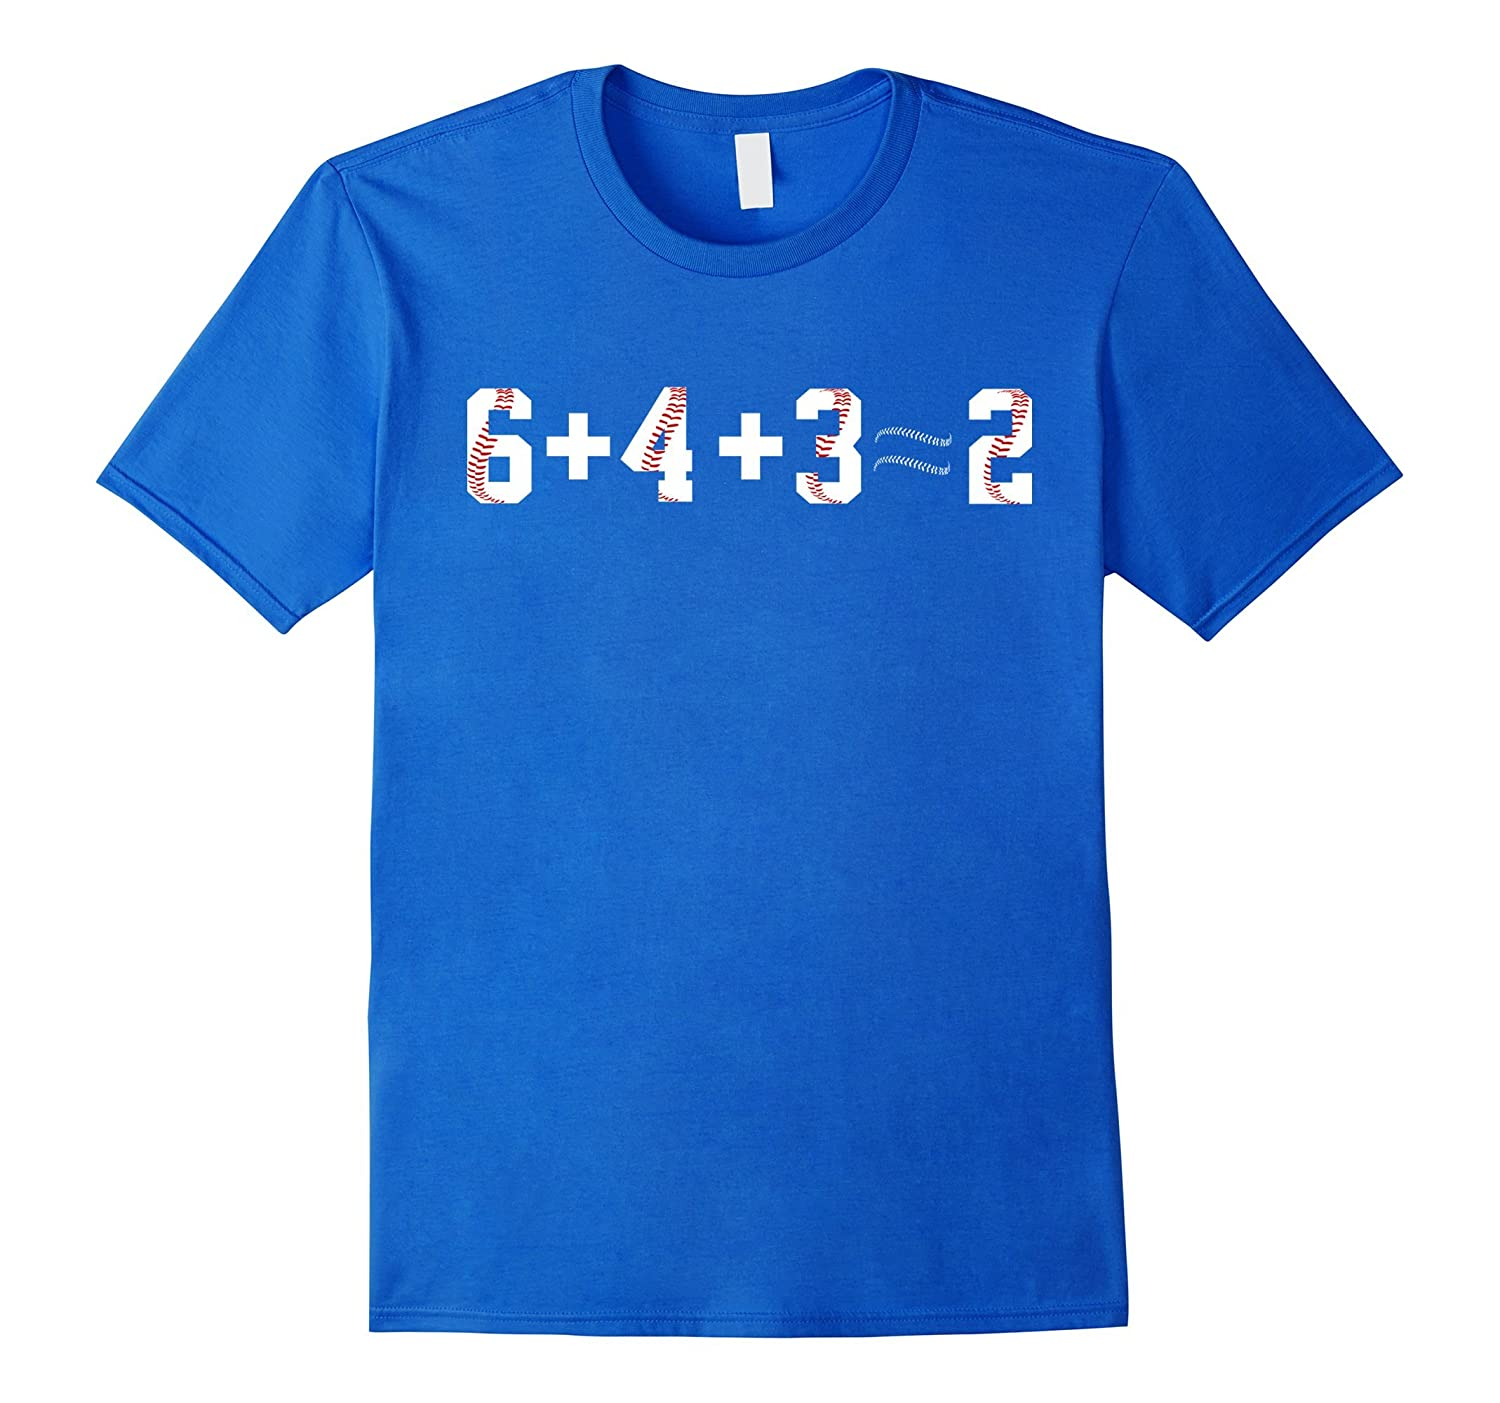 %6432 Baseball Shirt & 6 + 4 + 3 = 2 Baseball Funny Gift-TH